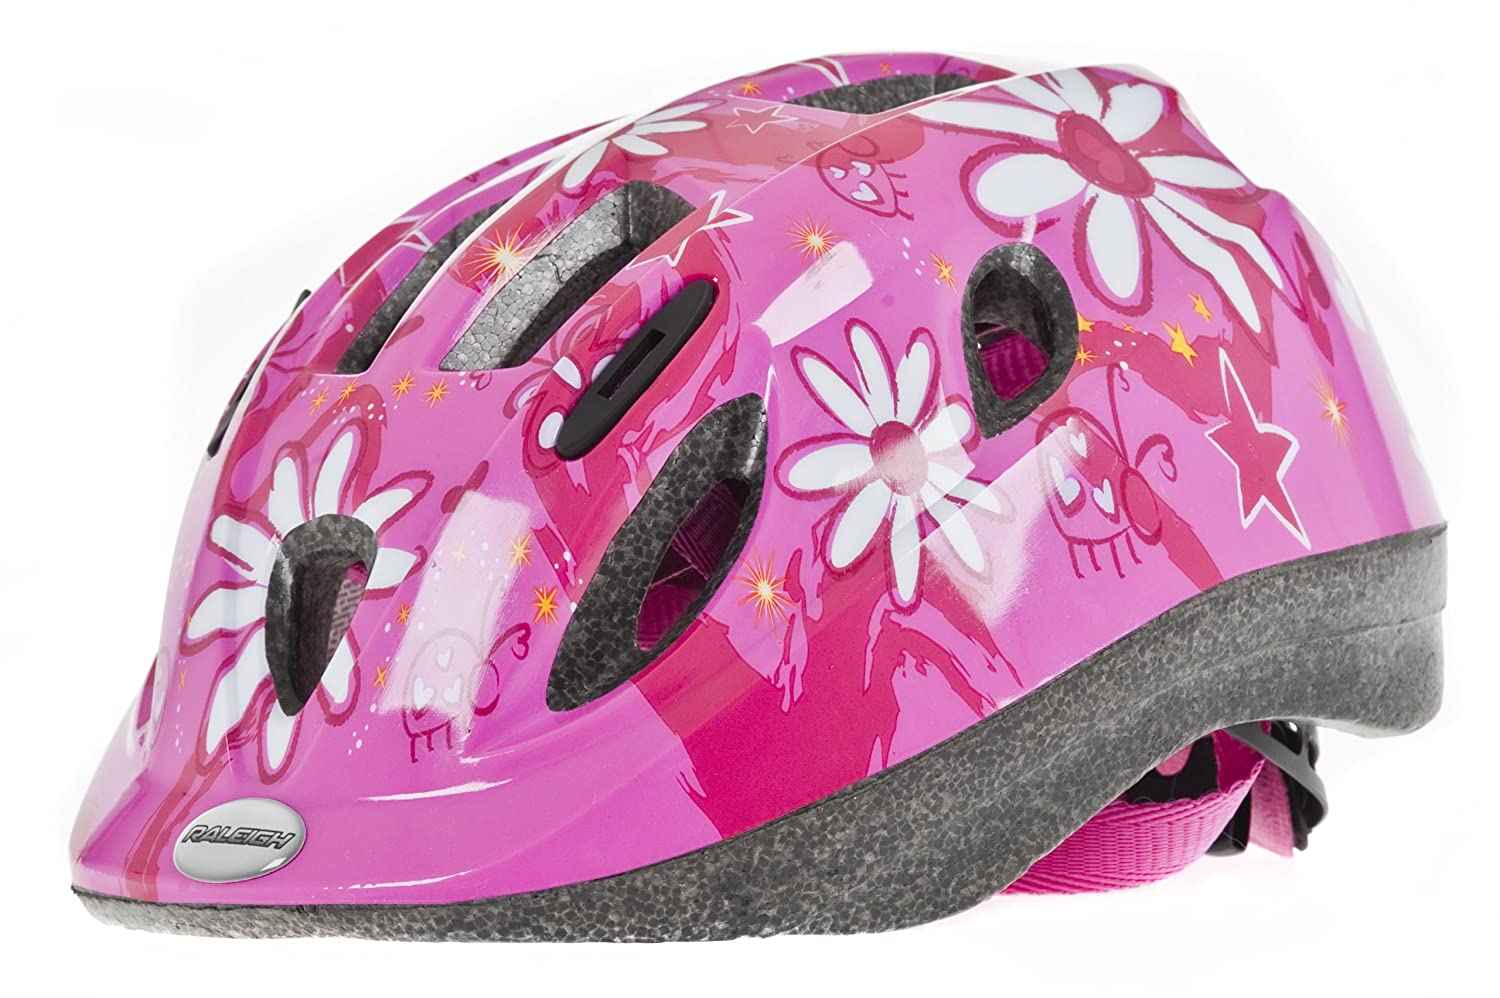 04ffecb049f0a Raleigh Mystery Pink Flower Girls Cycle Helmet  Amazon.co.uk  Sports    Outdoors